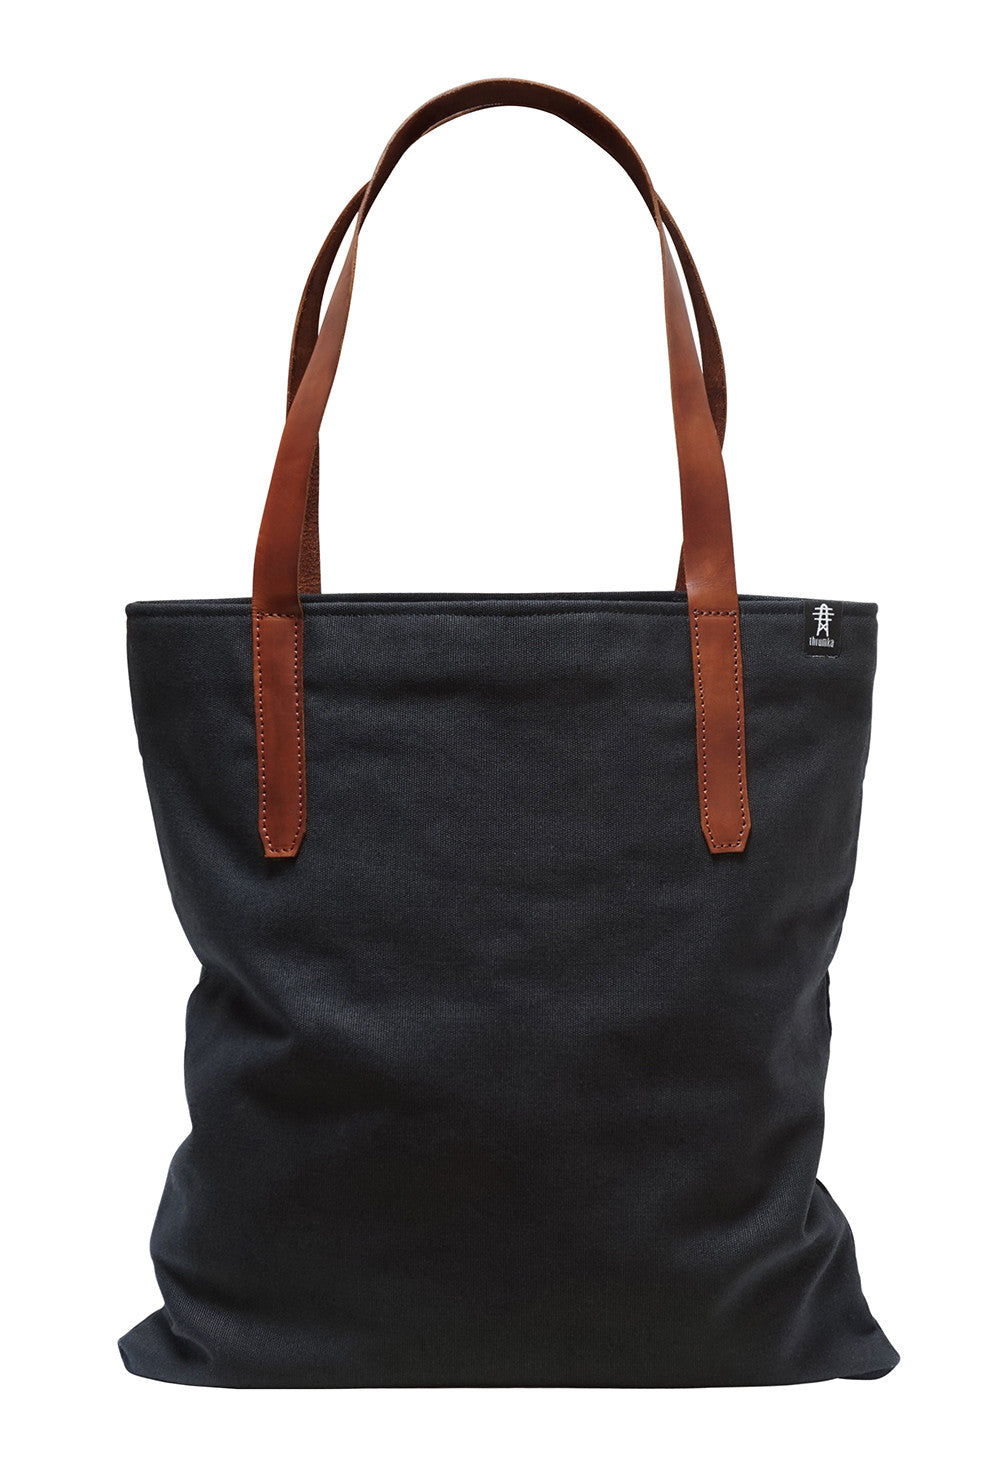 Tote Bag - Canvas Reversible - Drips